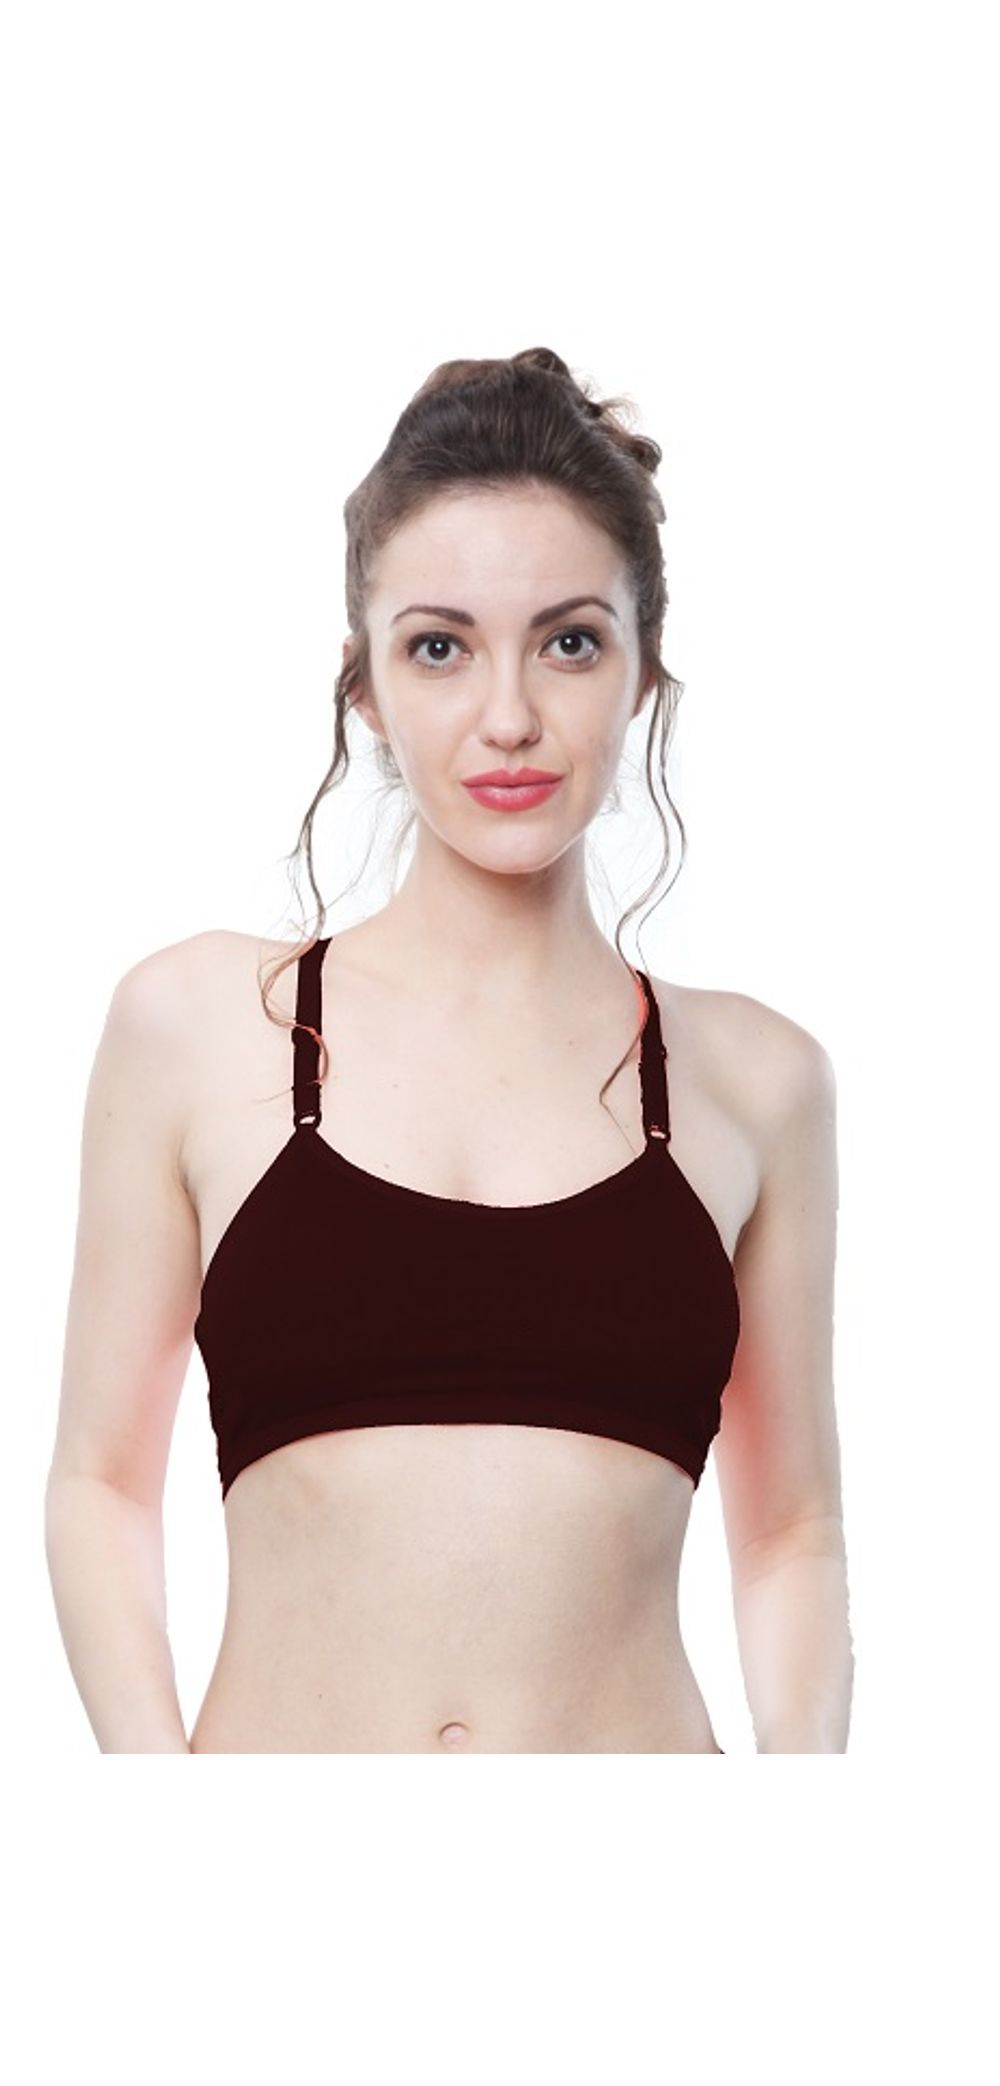 2c162aac2e sold-out-image Glus Sports   Yoga   Home wear Racer Back Pull On Padded  Bralette